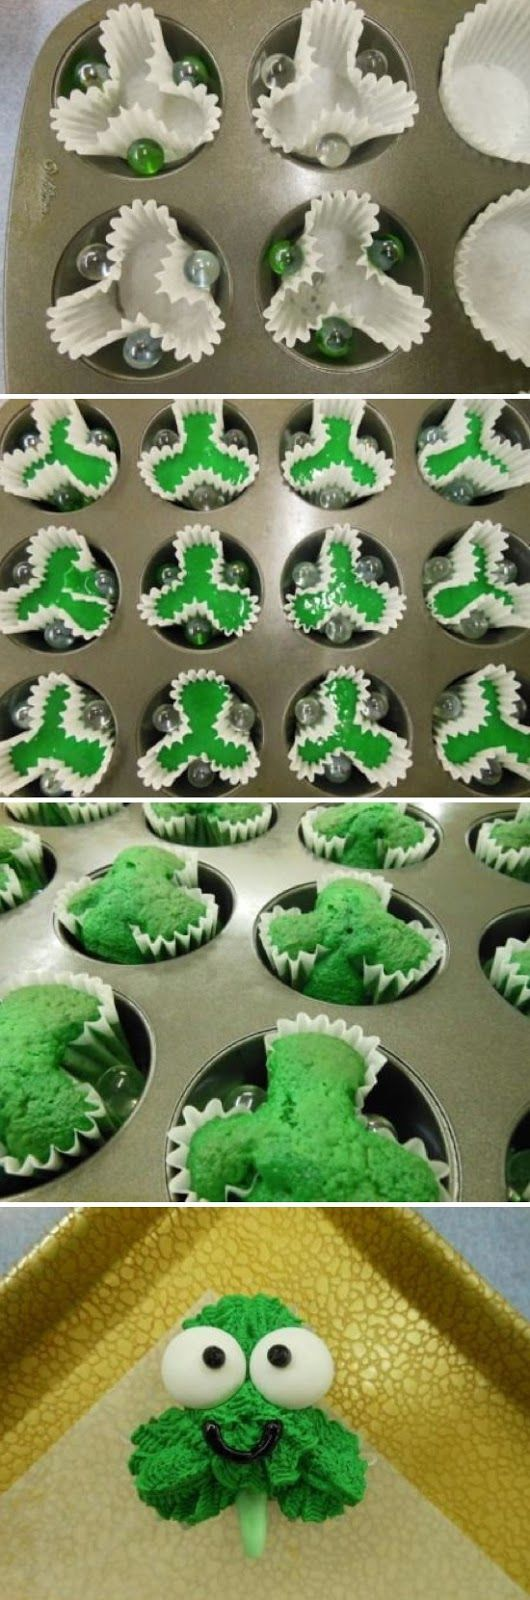 Clover cupcakes for St. Patrick's Day ~ Plus lots of other cute ideas for St. Patrick's Day!